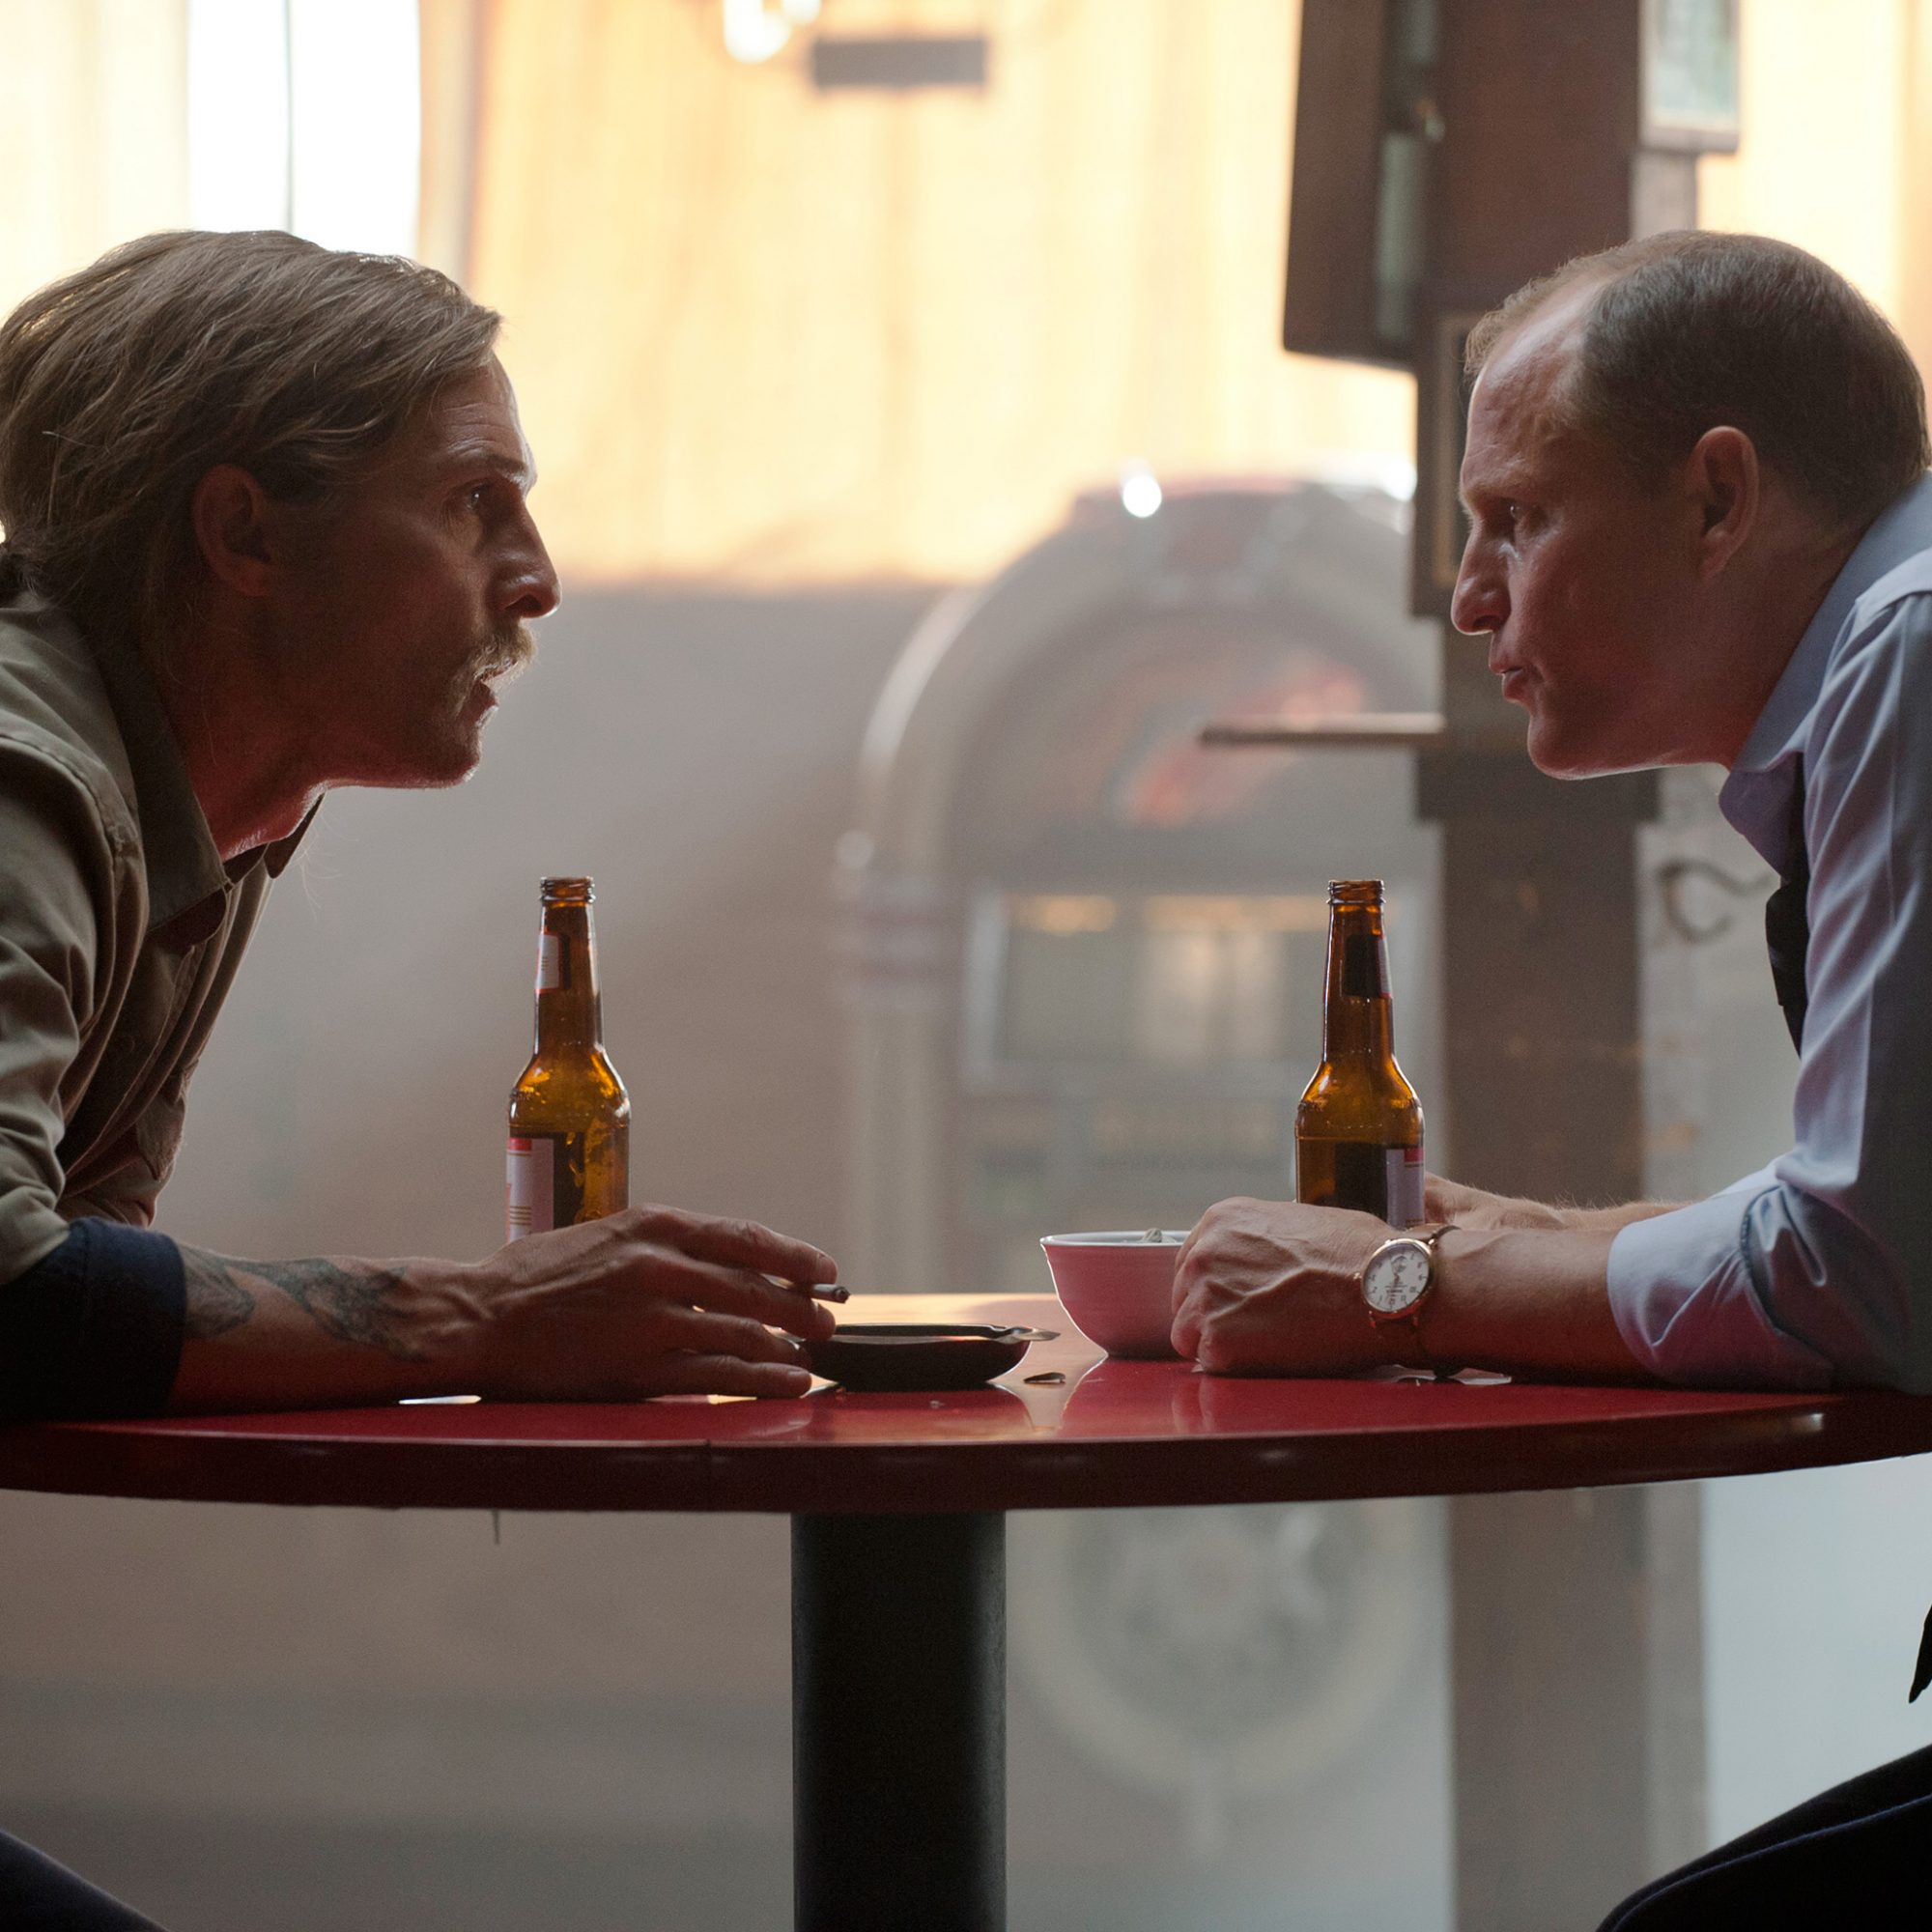 The True Detective Finale Drinking Game